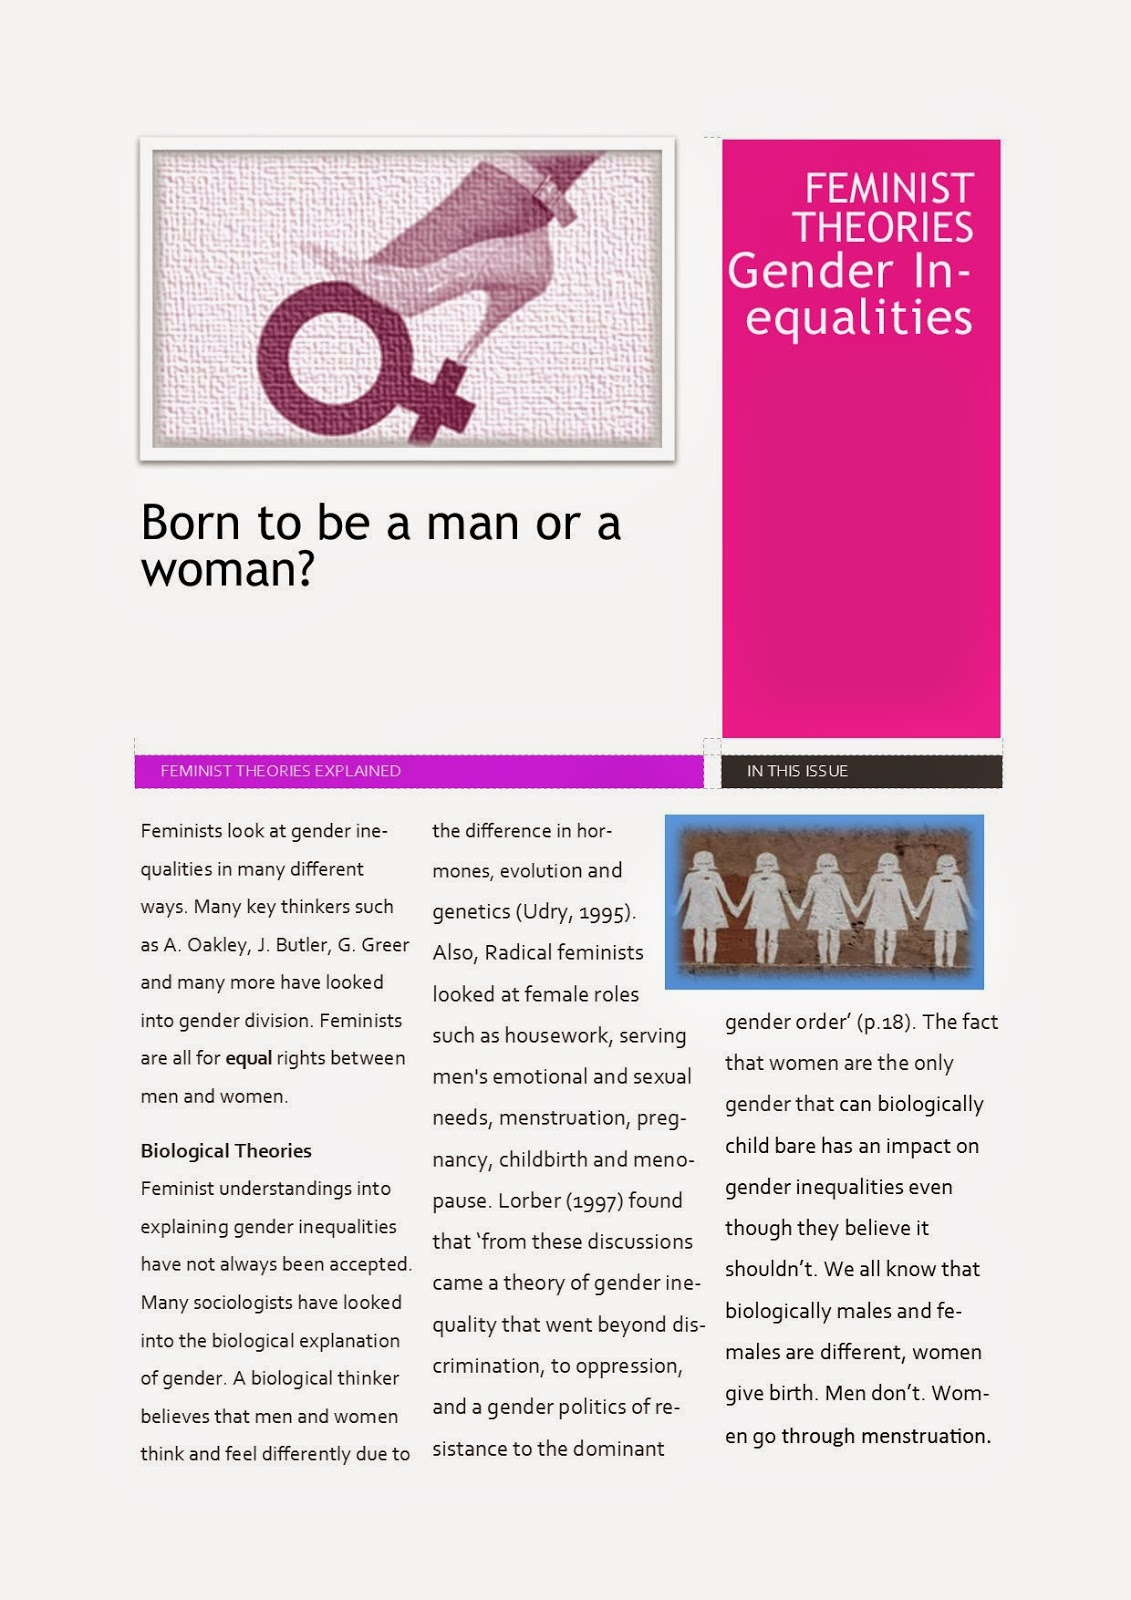 discuss biological explanations of gender development Extracts from this document introduction laura searle compare and contrast the biological and social learning theories of gender development gender can be explained by the biological and social learning theories.